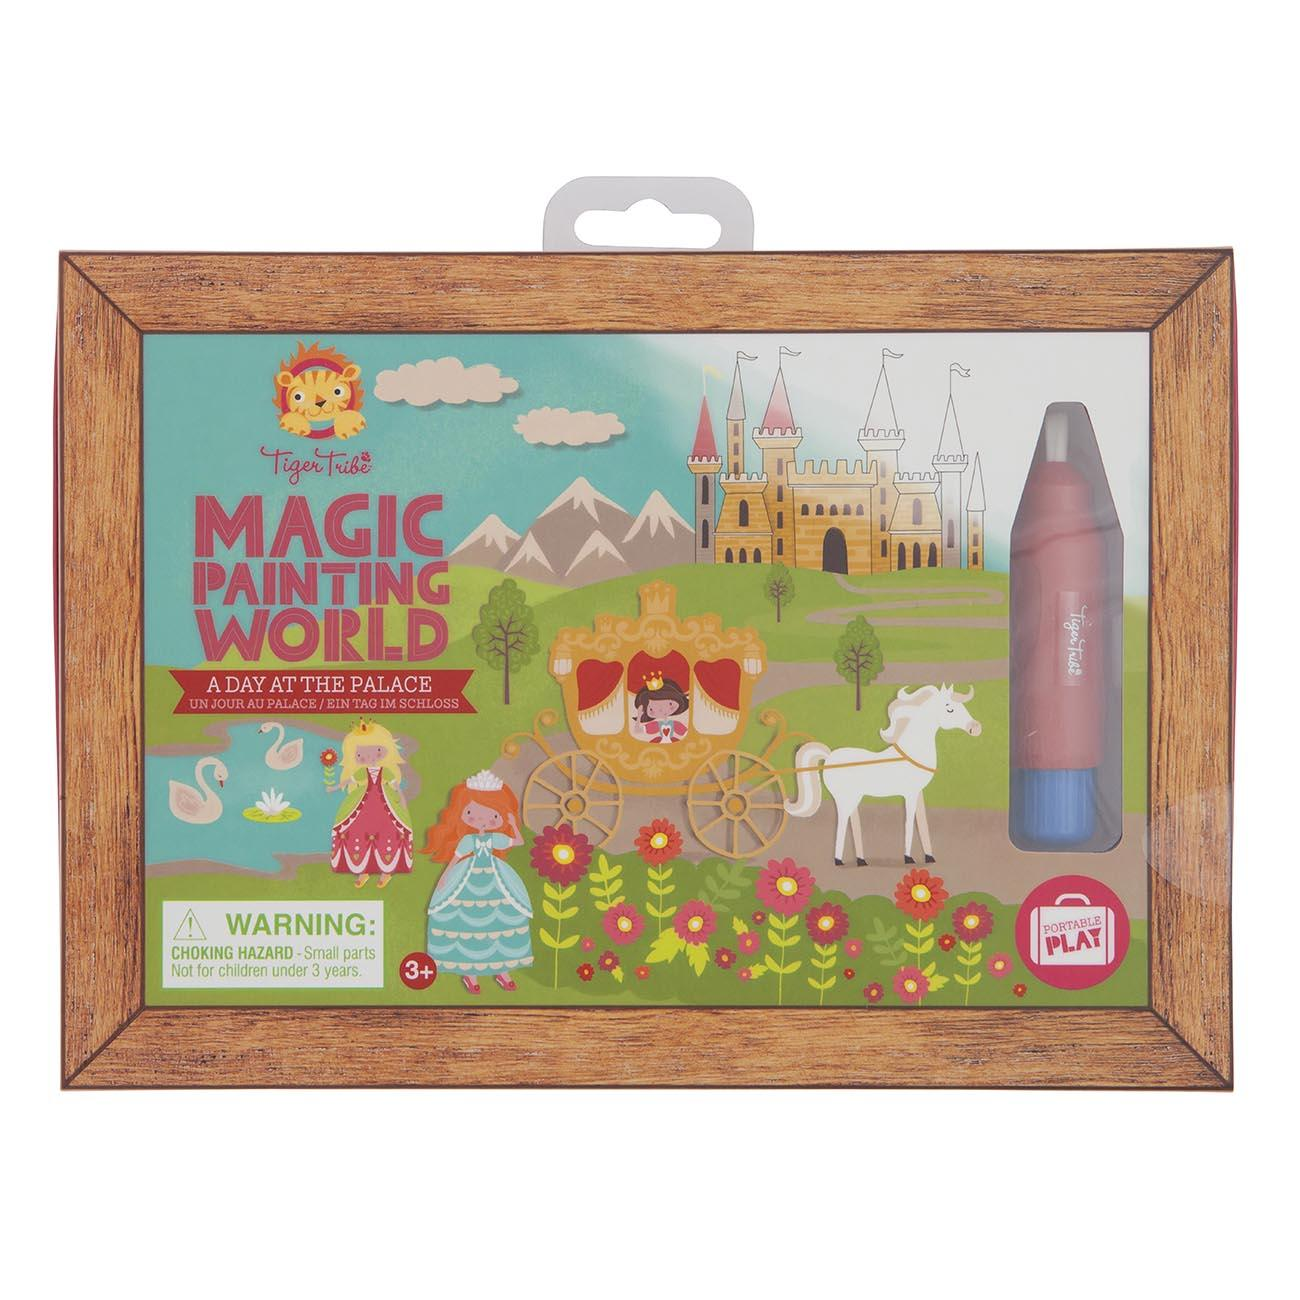 Magic Painting World (A Day at the Palace)